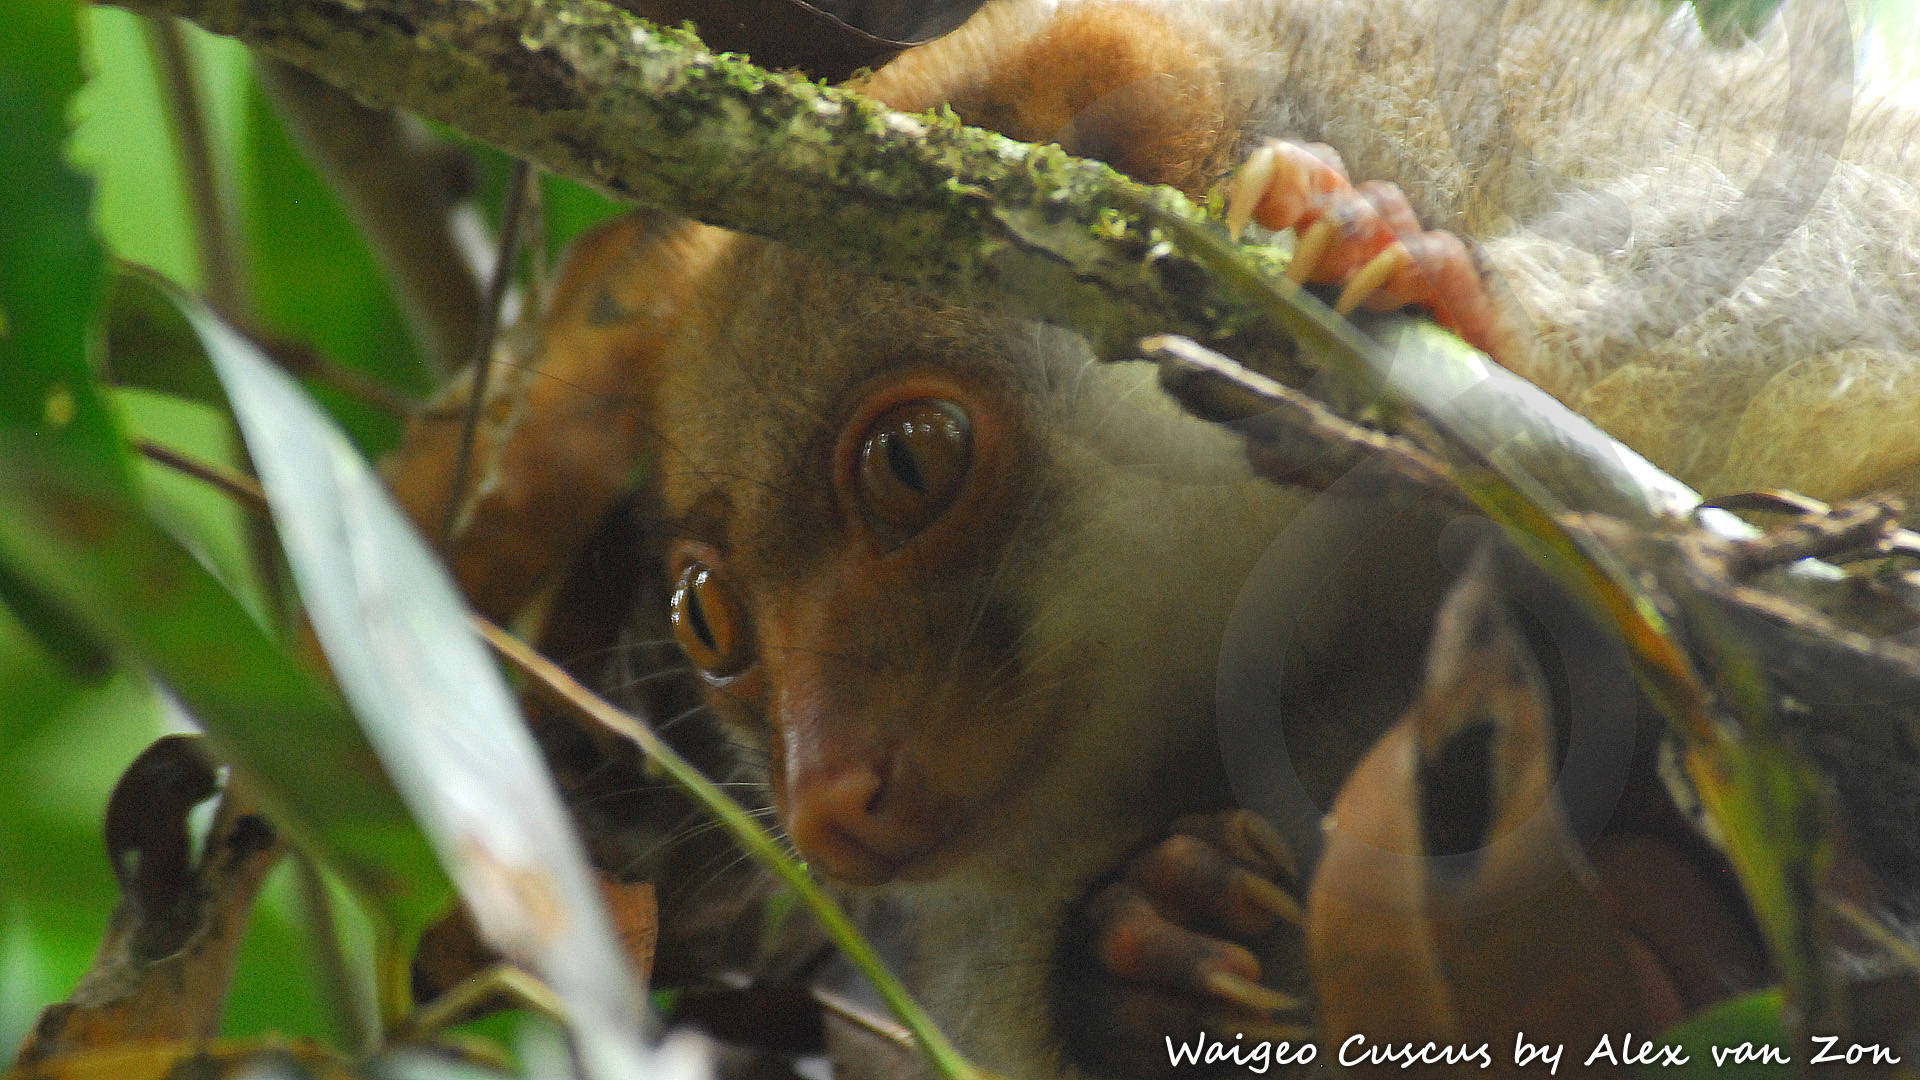 Getting up-close and personal with the endemic and endangered marsupial Waigeo Cuscus Spilocuscus papuensis could be one of the highlights of an outdoors adventure to the largest Raja Ampat island of Waigeo. Copyright © Alex van Zon